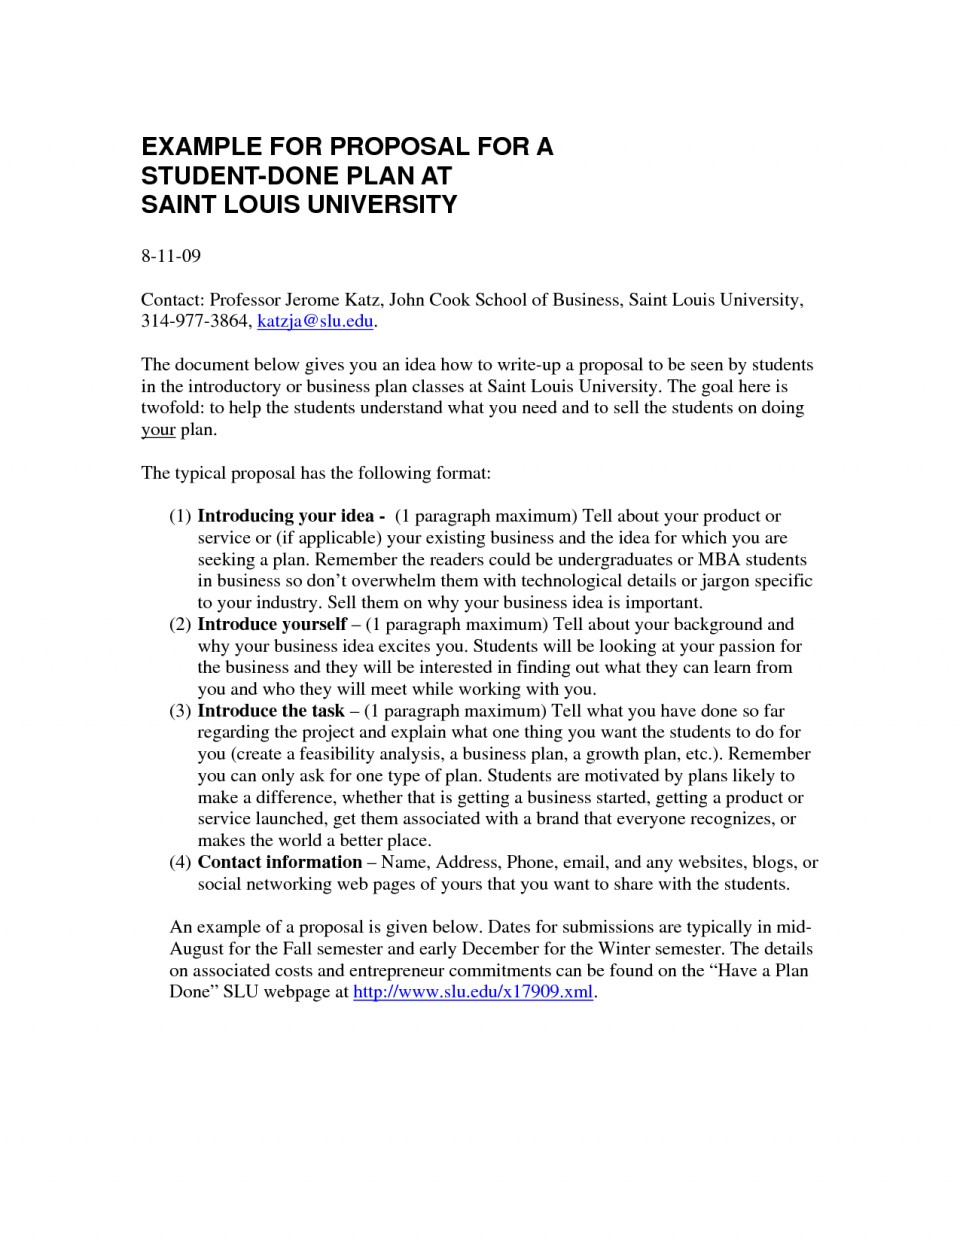 026 Racism Essays Of Science Research Paper Proposal 408814 Marvelous Essay Argumentative Topics Persuasive In Canada 960